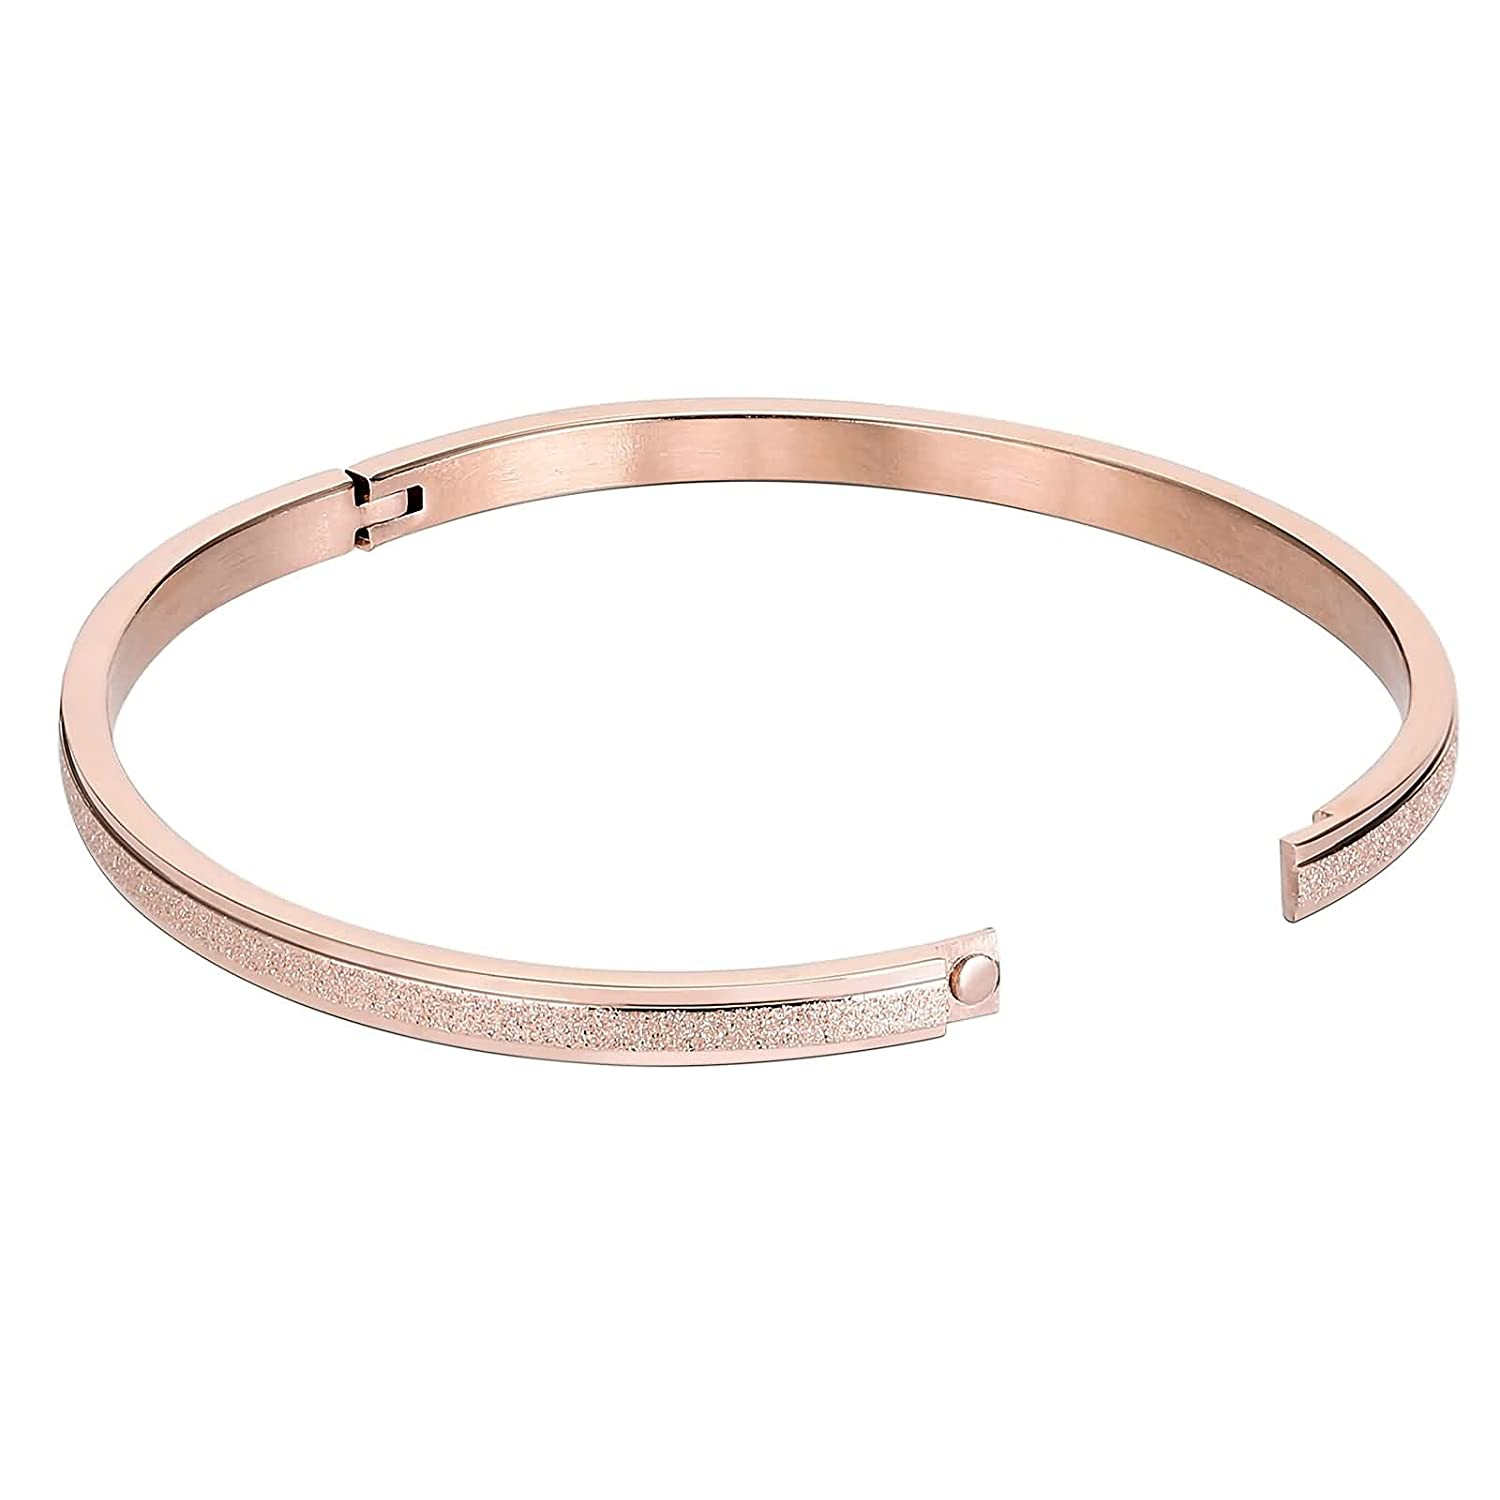 KnSam Cuff Bracelets for Womens Stainless Steel Tube Hinged with Pave Rose Gold